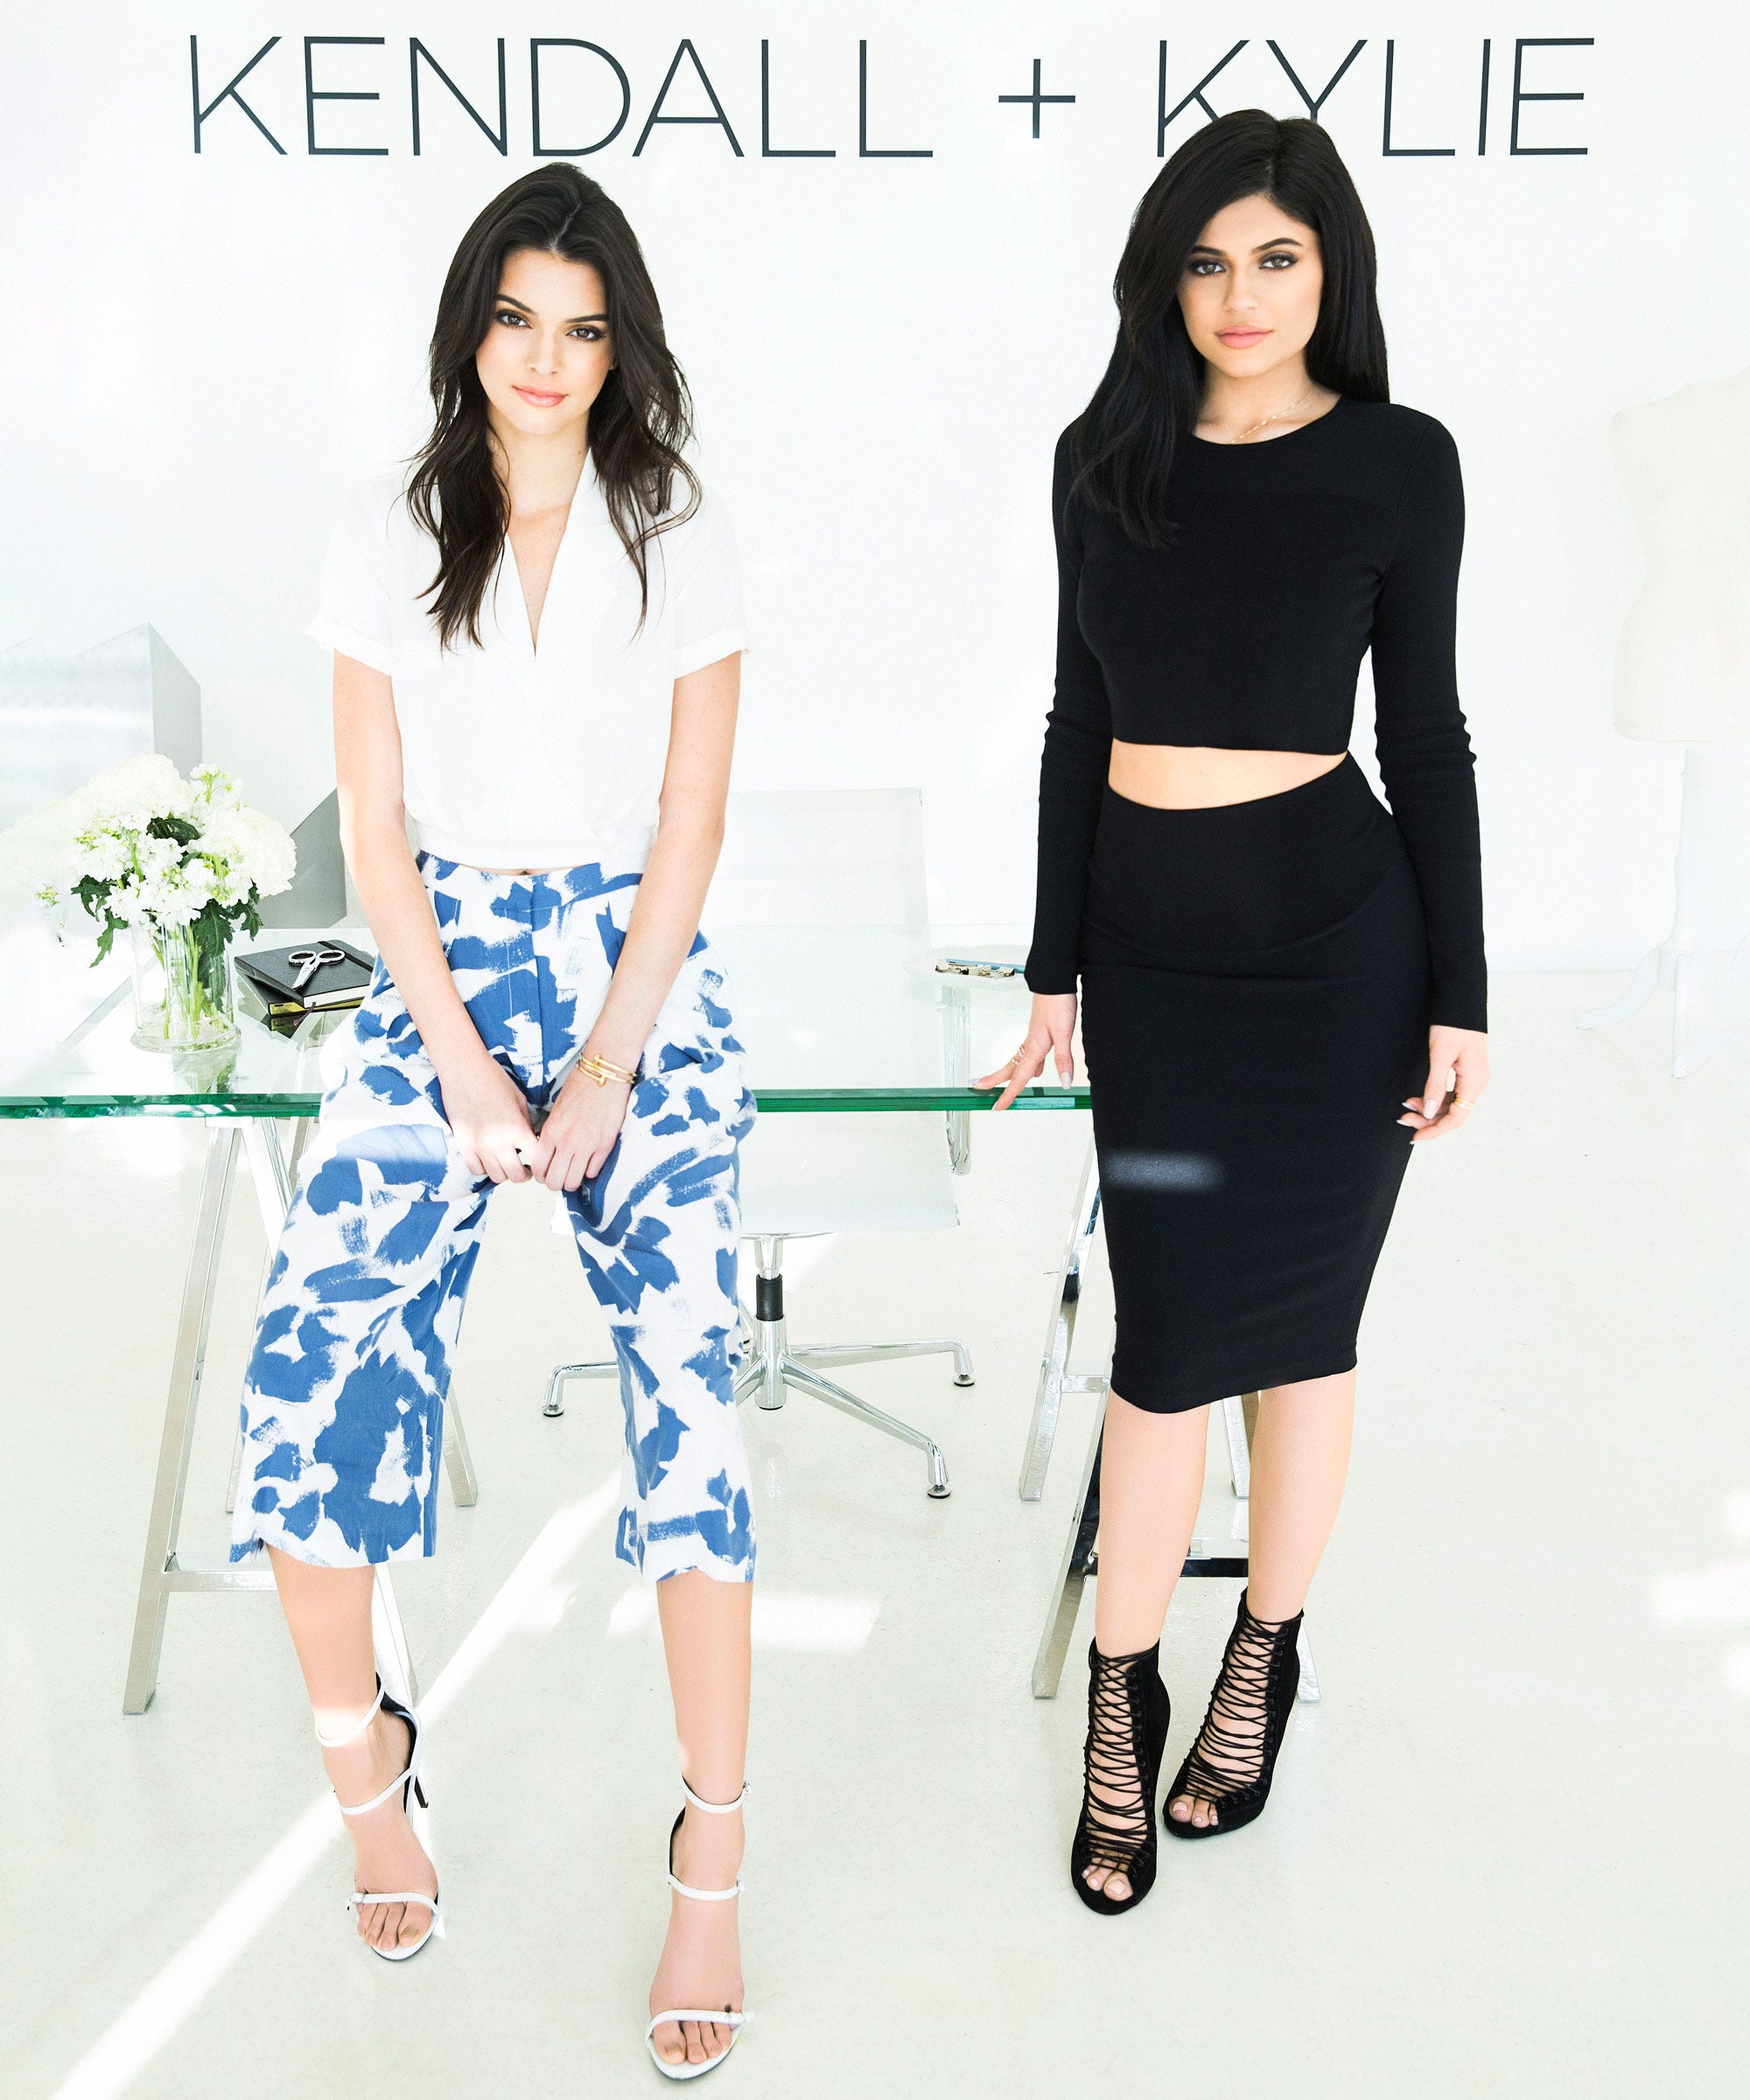 845845b3f55 Your First Look At Kendall + Kylie s Debut Collection